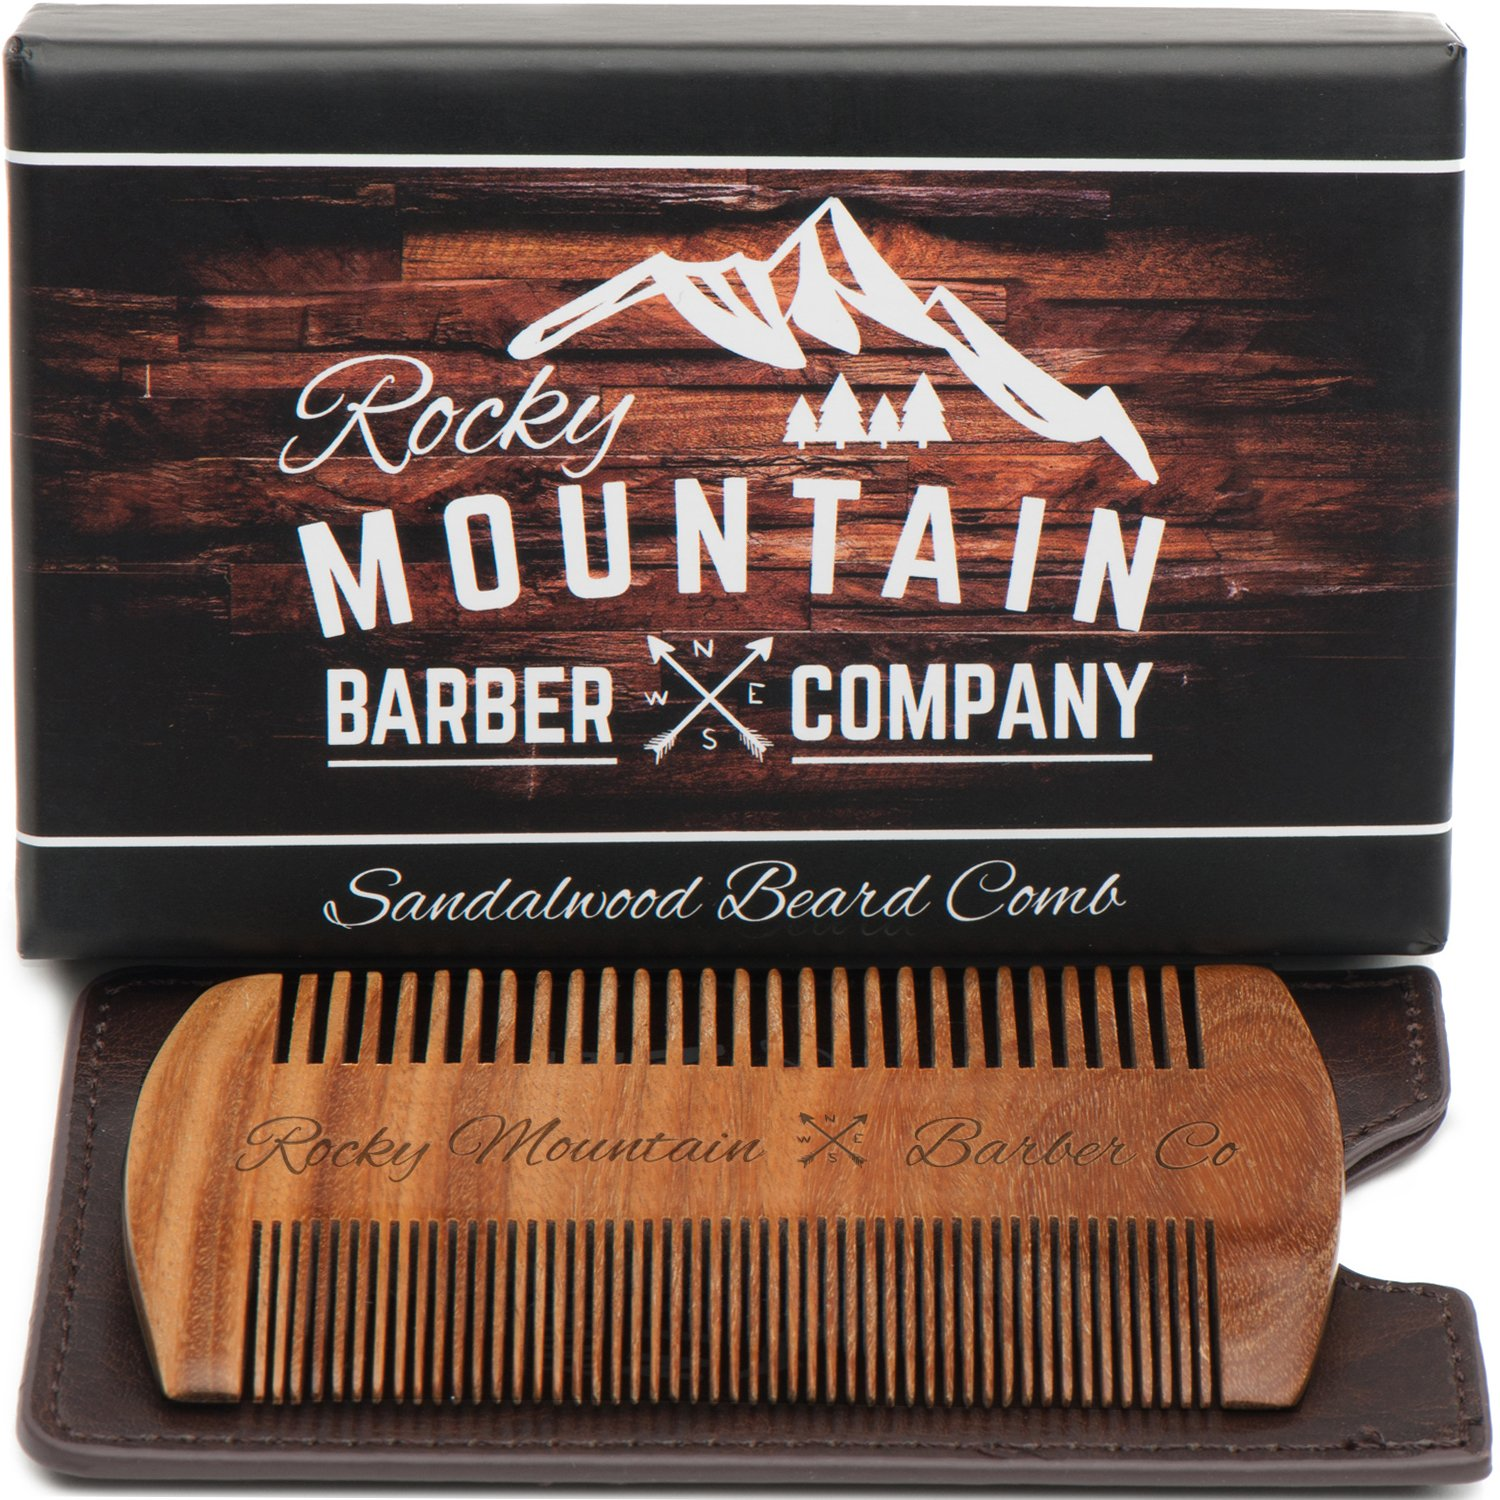 Beard Comb - Natural Sandalwood for Hair with Scented Fragrance Smell with Anti-Static - Handmade Fine Tooth Brush Best for Beard Moustache Packaged in Giftbox by Rocky Mountain Barber Company (Image #1)